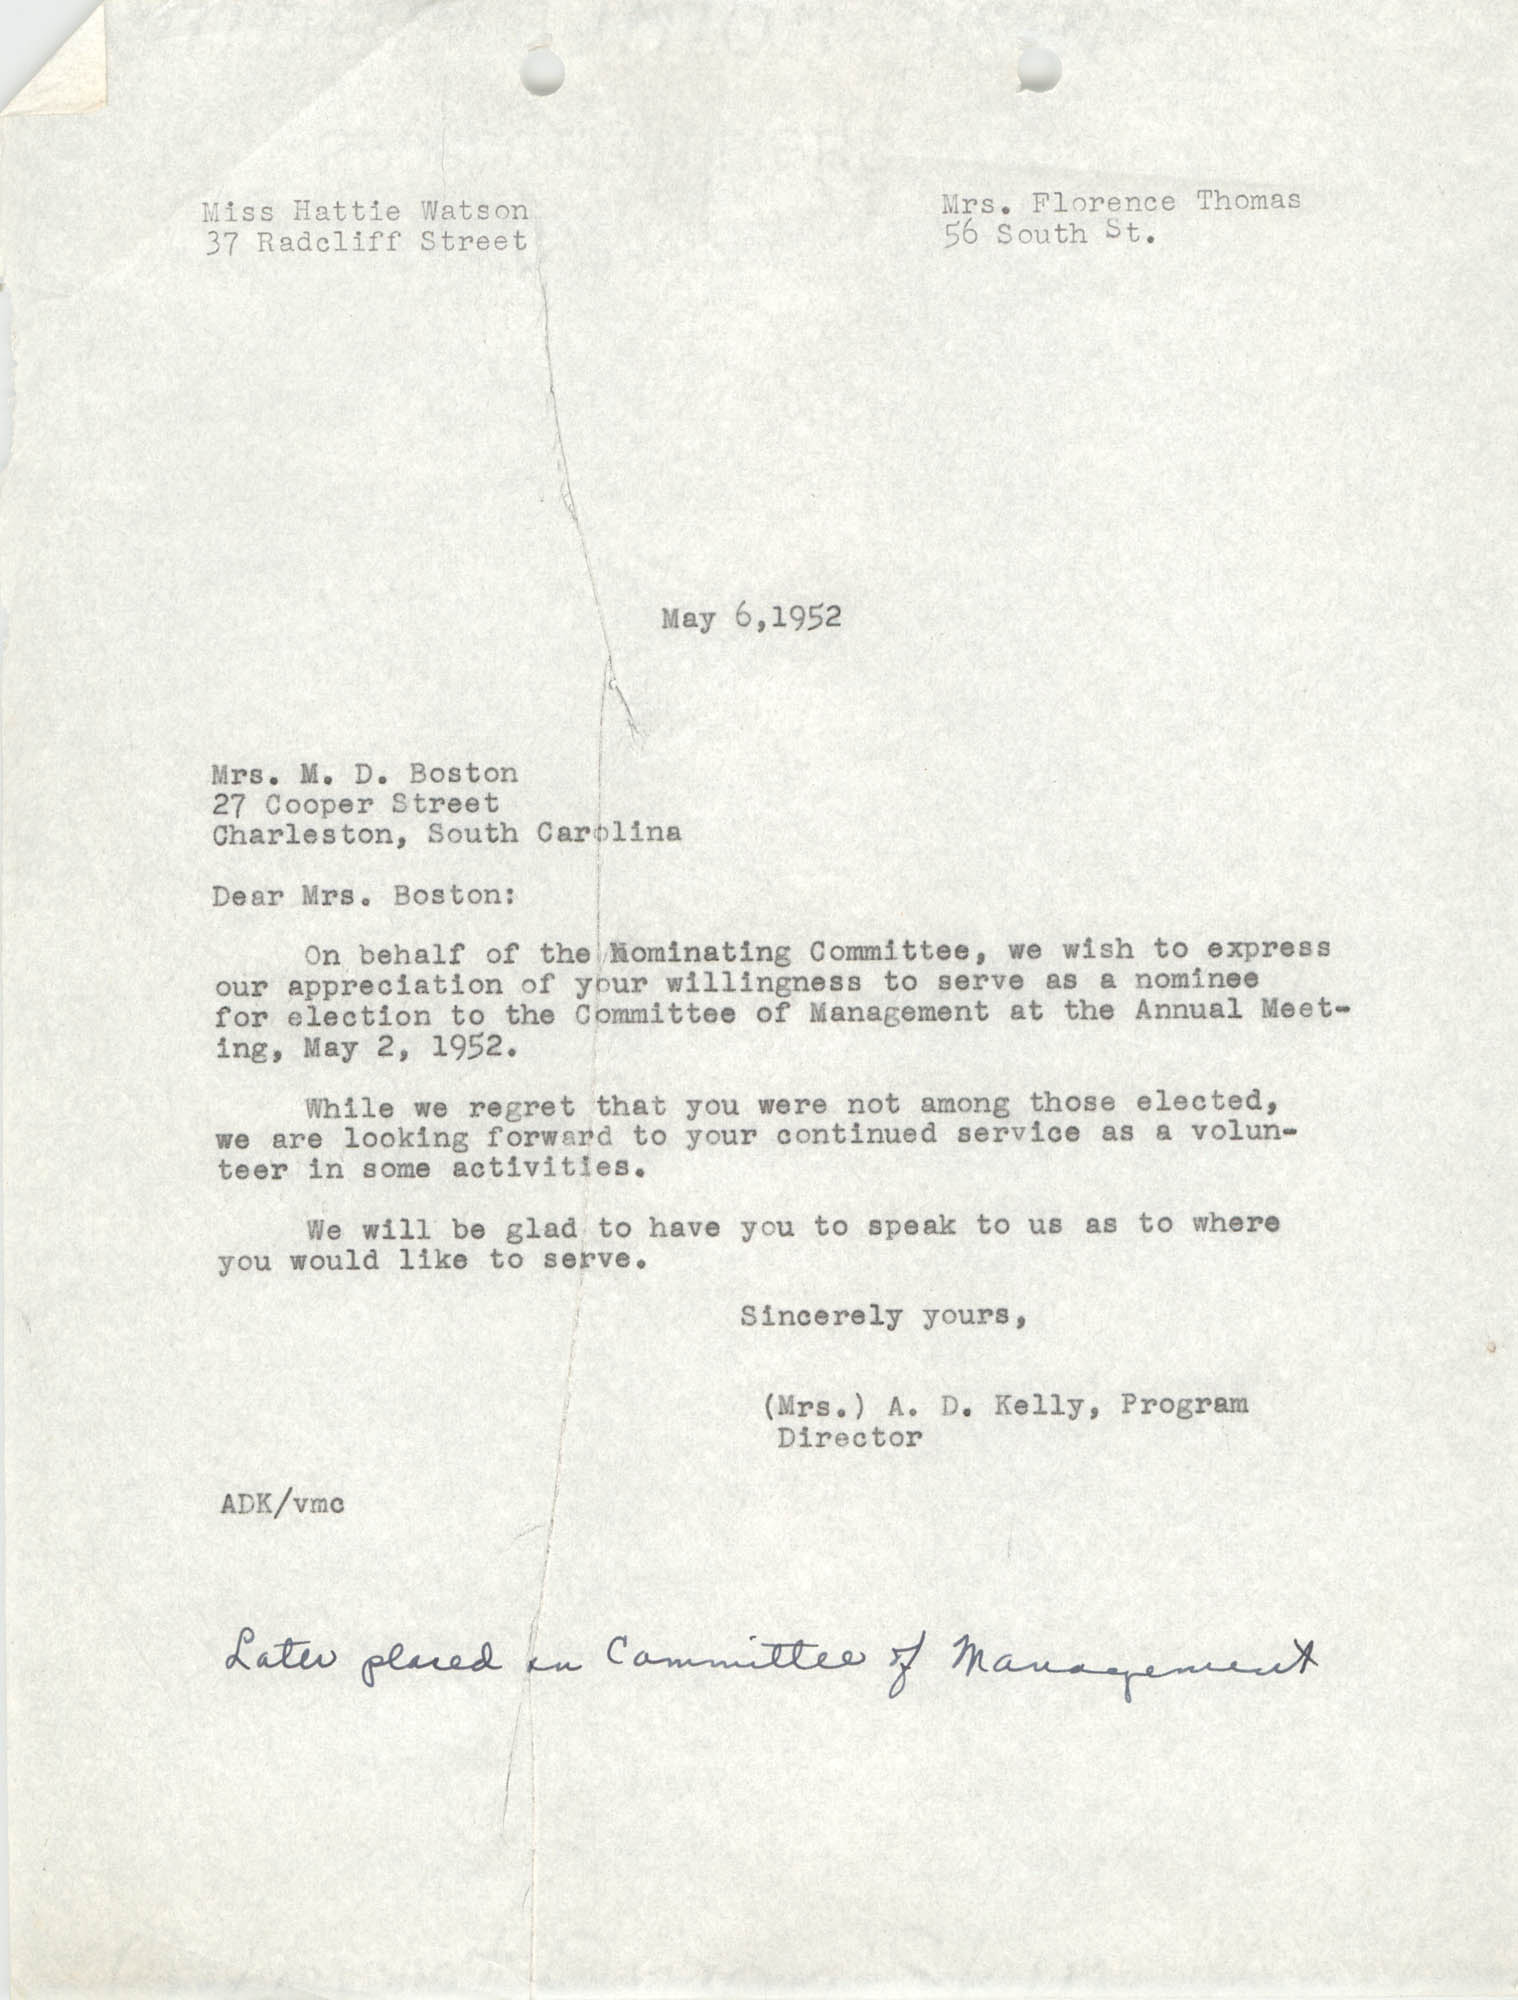 Letter from M. B. McNeil to M. D. Boston, May 6, 1952